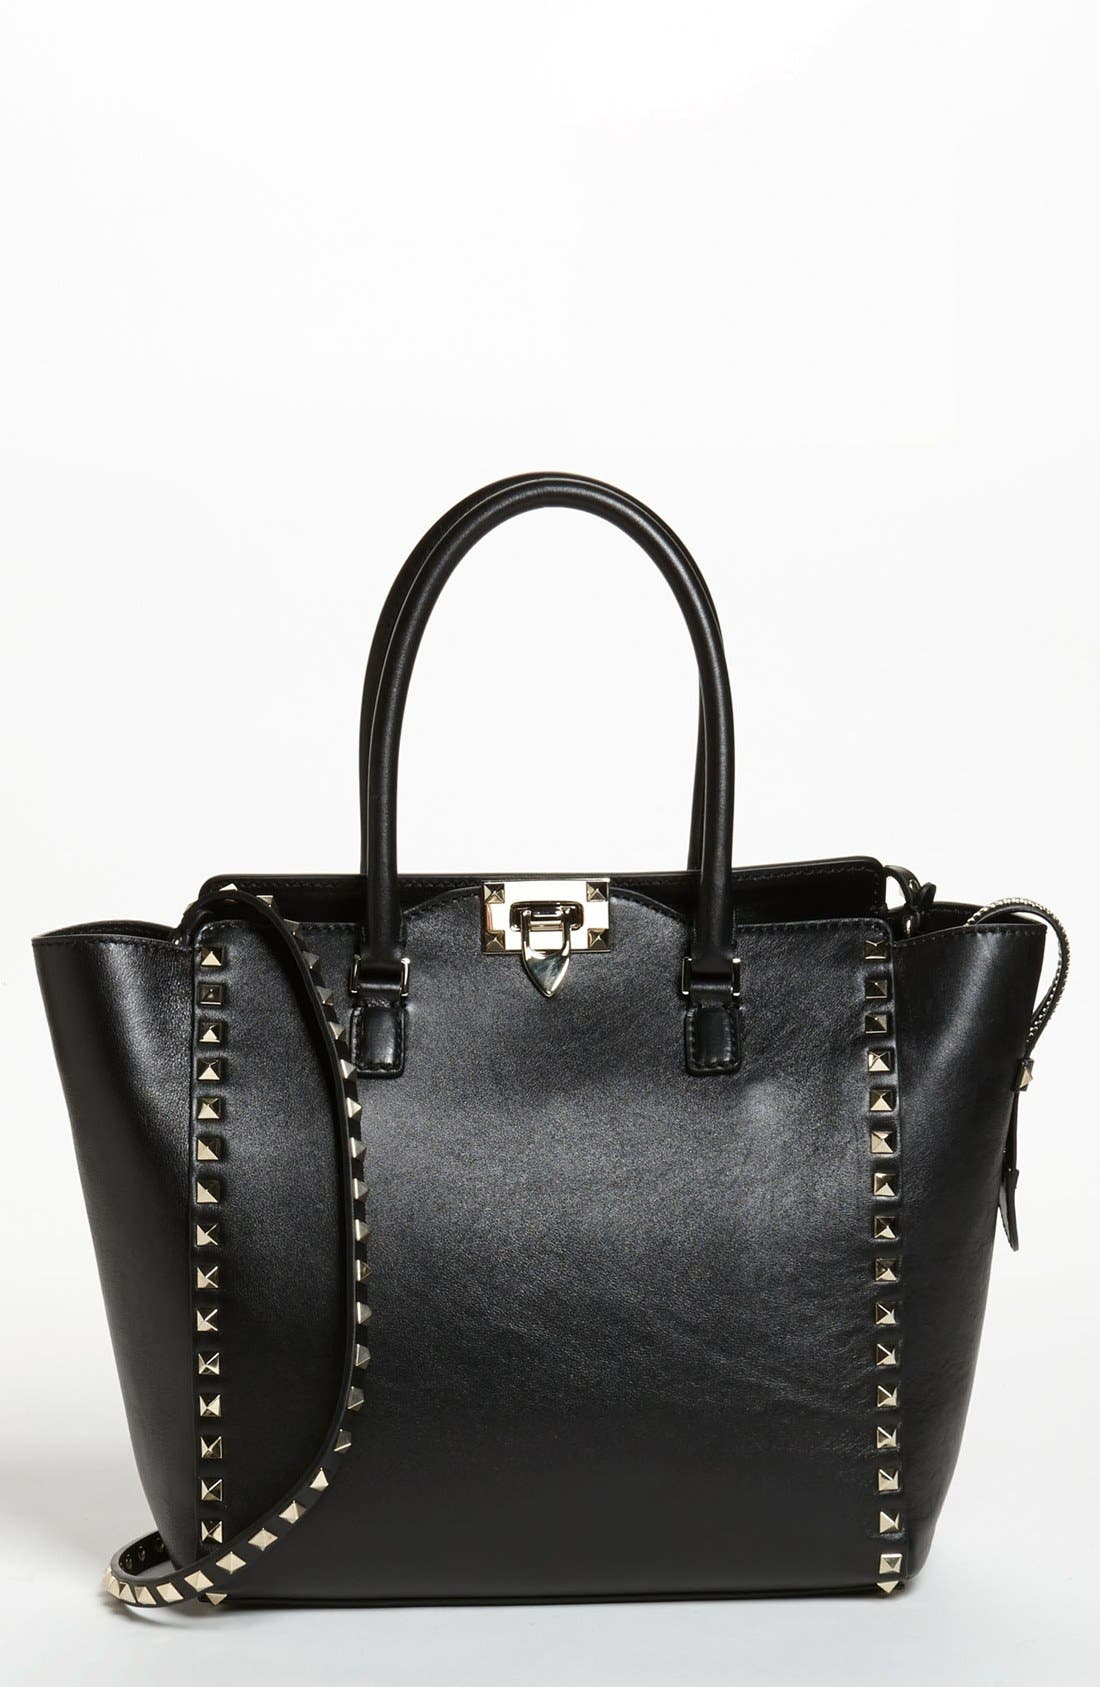 Main Image - Valentino 'Rockstud' Double Handle Leather Tote